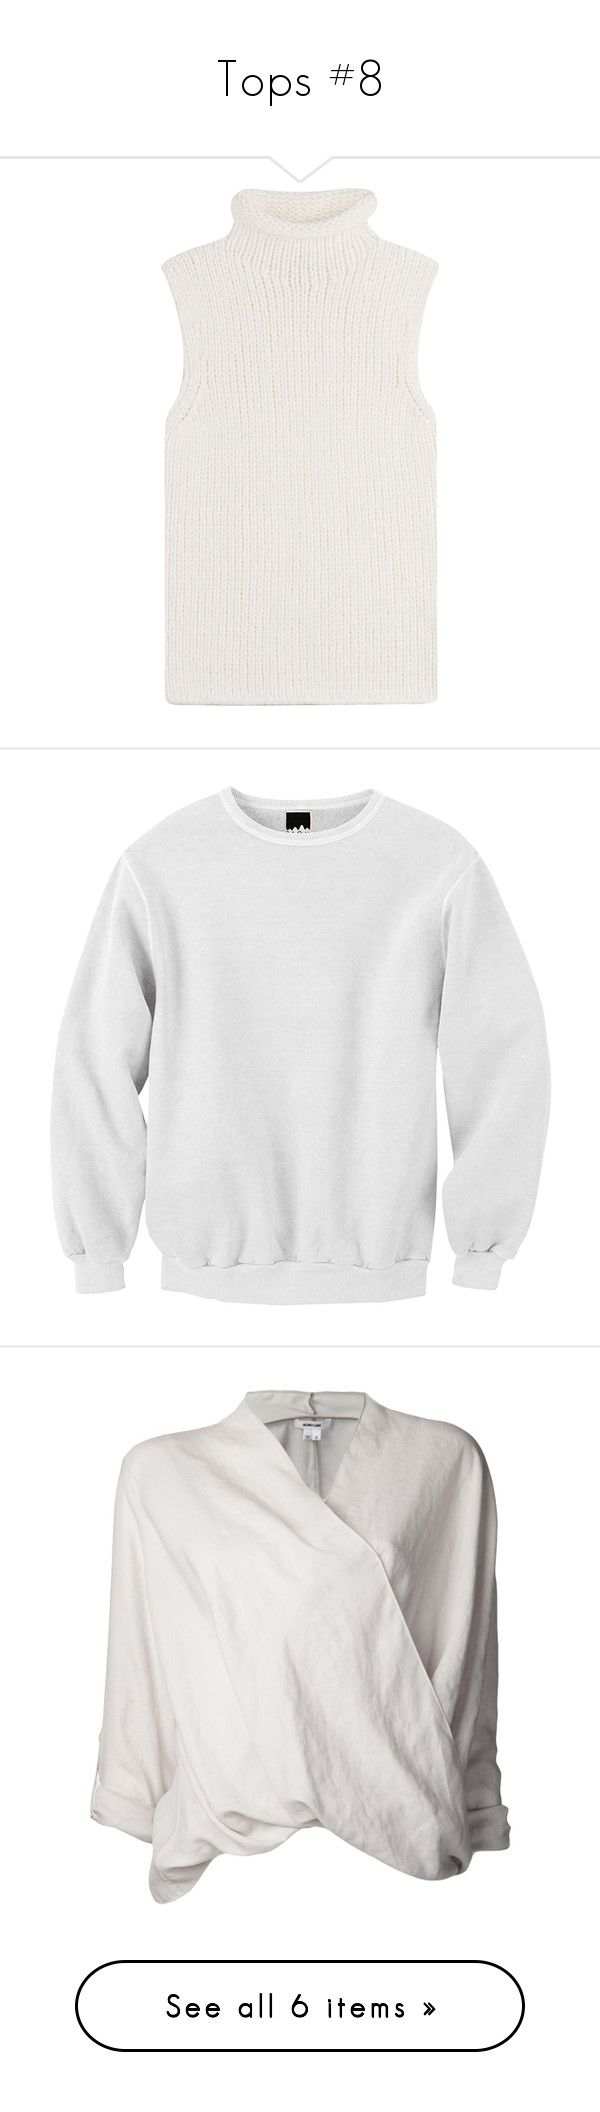 Tops #8 by marissa-91 on Polyvore featuring polyvore women's fashion clothing tops sweaters shirts tanks white white turtleneck shirt knit turtleneck sweater white sweater knit shirt white shirt hoodies sweatshirts jumpers print sweatshirt patterned tops print top mixed print top patterned sweatshirt blouses long sleeves grey blouse v neck long sleeve shirt 3/4 sleeve blouse gray long sleeve shirt polyester shirt h&m natural white lace sleeve top short sleeve lace blouse white blouse long…